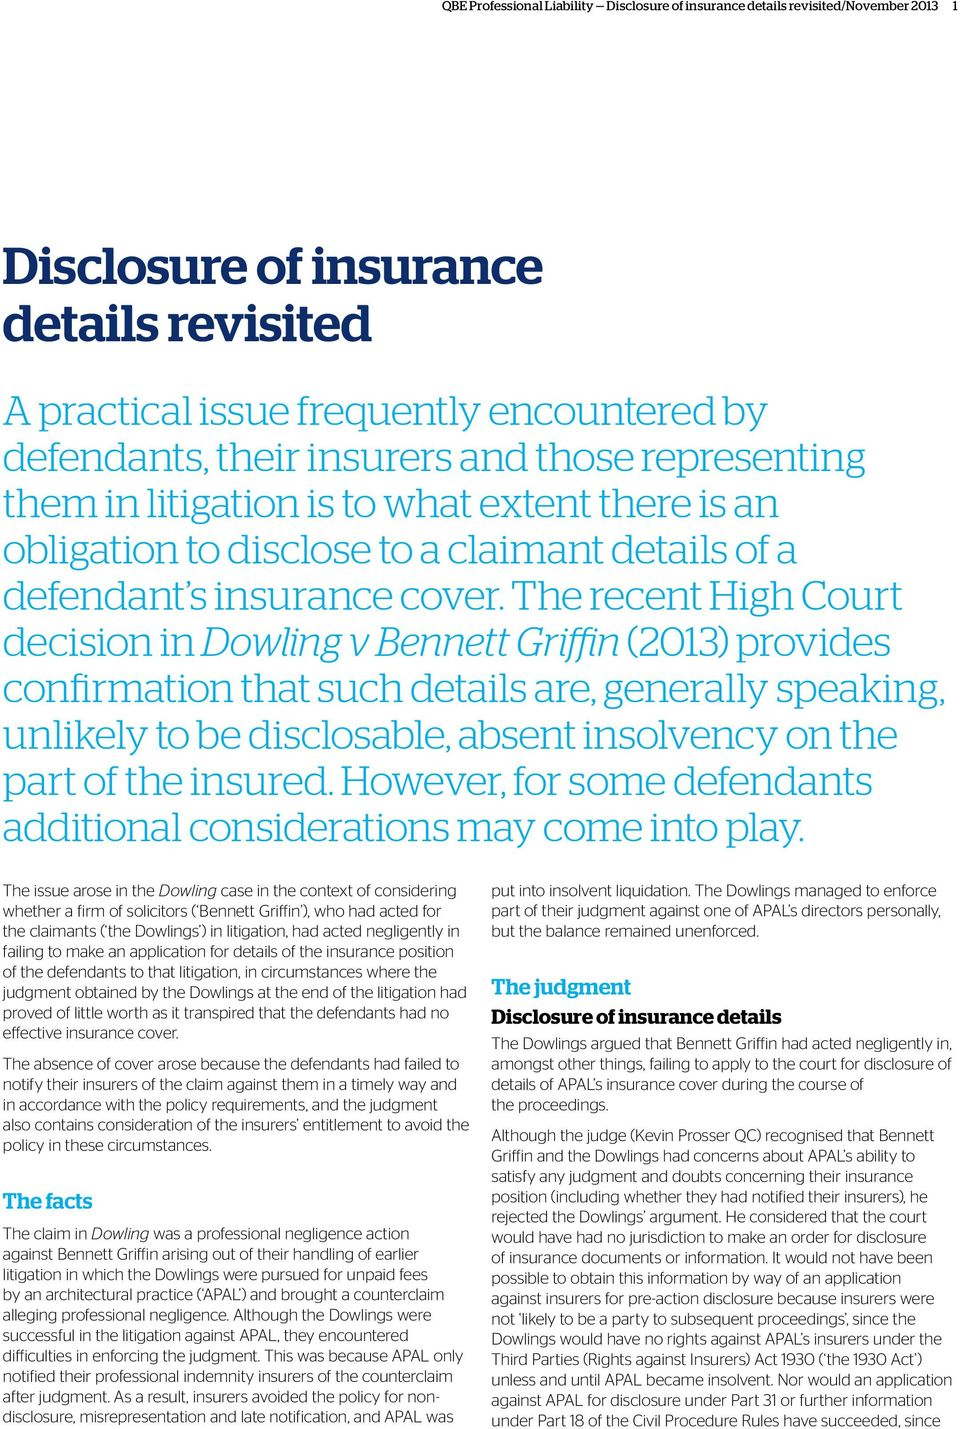 The recent High Court decision in Dowling v Bennett Griffin (2013) provides confirmation that such details are, generally speaking, unlikely to be disclosable, absent insolvency on the part of the